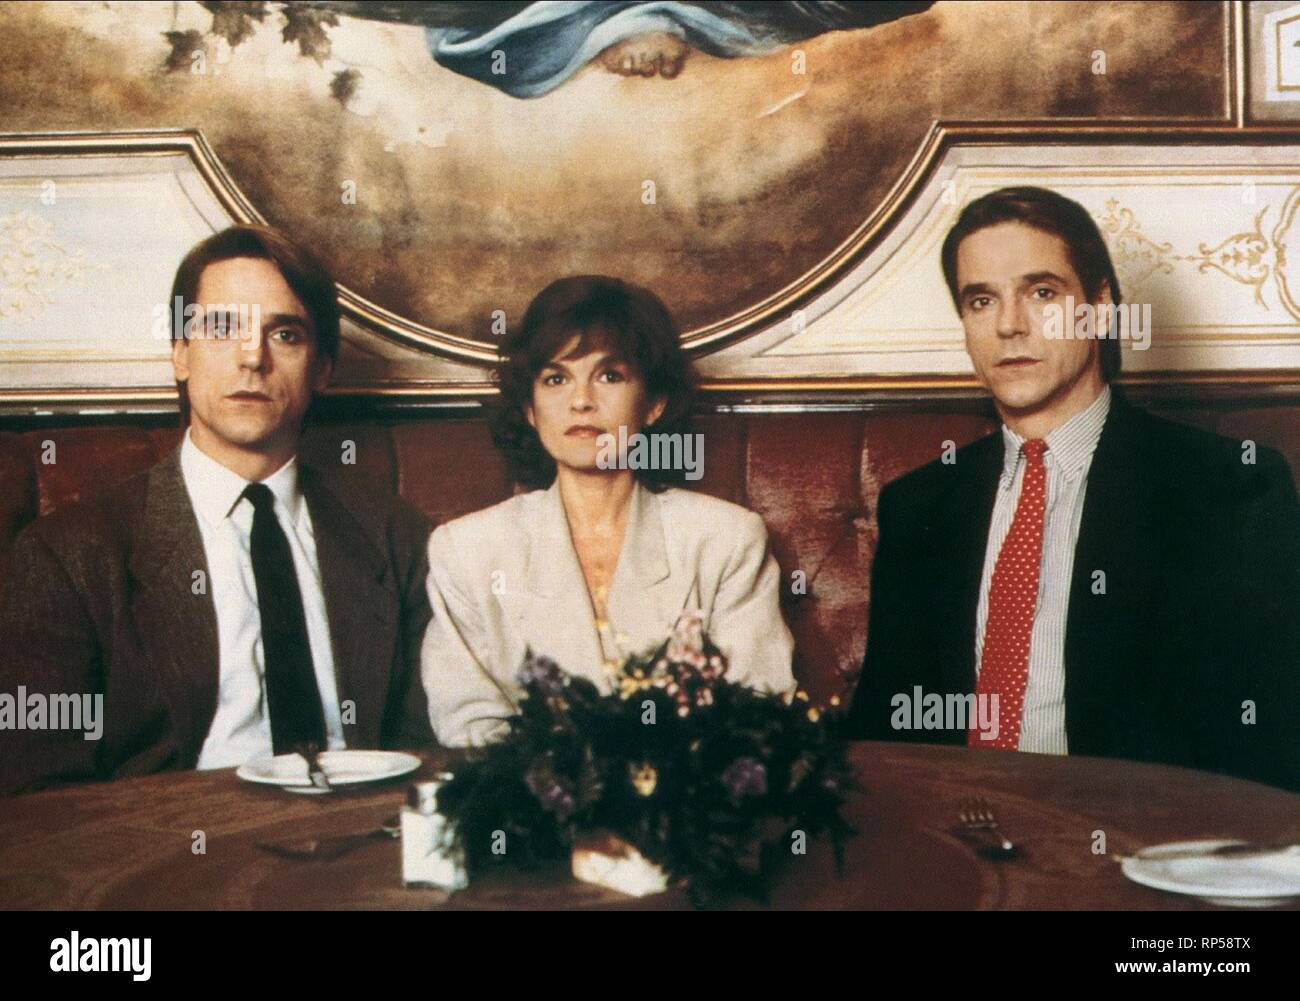 DEAD RINGERS, JEREMY IRONS, GENEVIEVE BUJOLD , JEREMY IRONS, 2012 Stock Photo